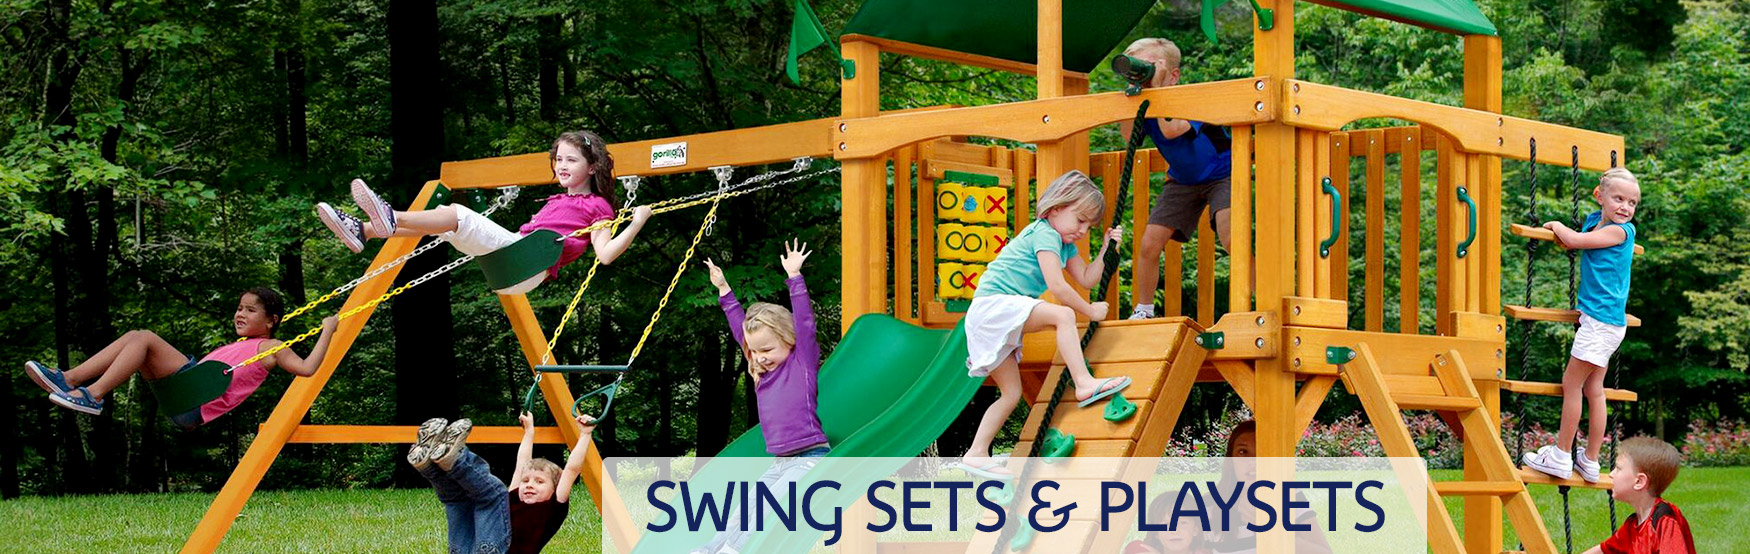 Swing Sets & Playsets Banner